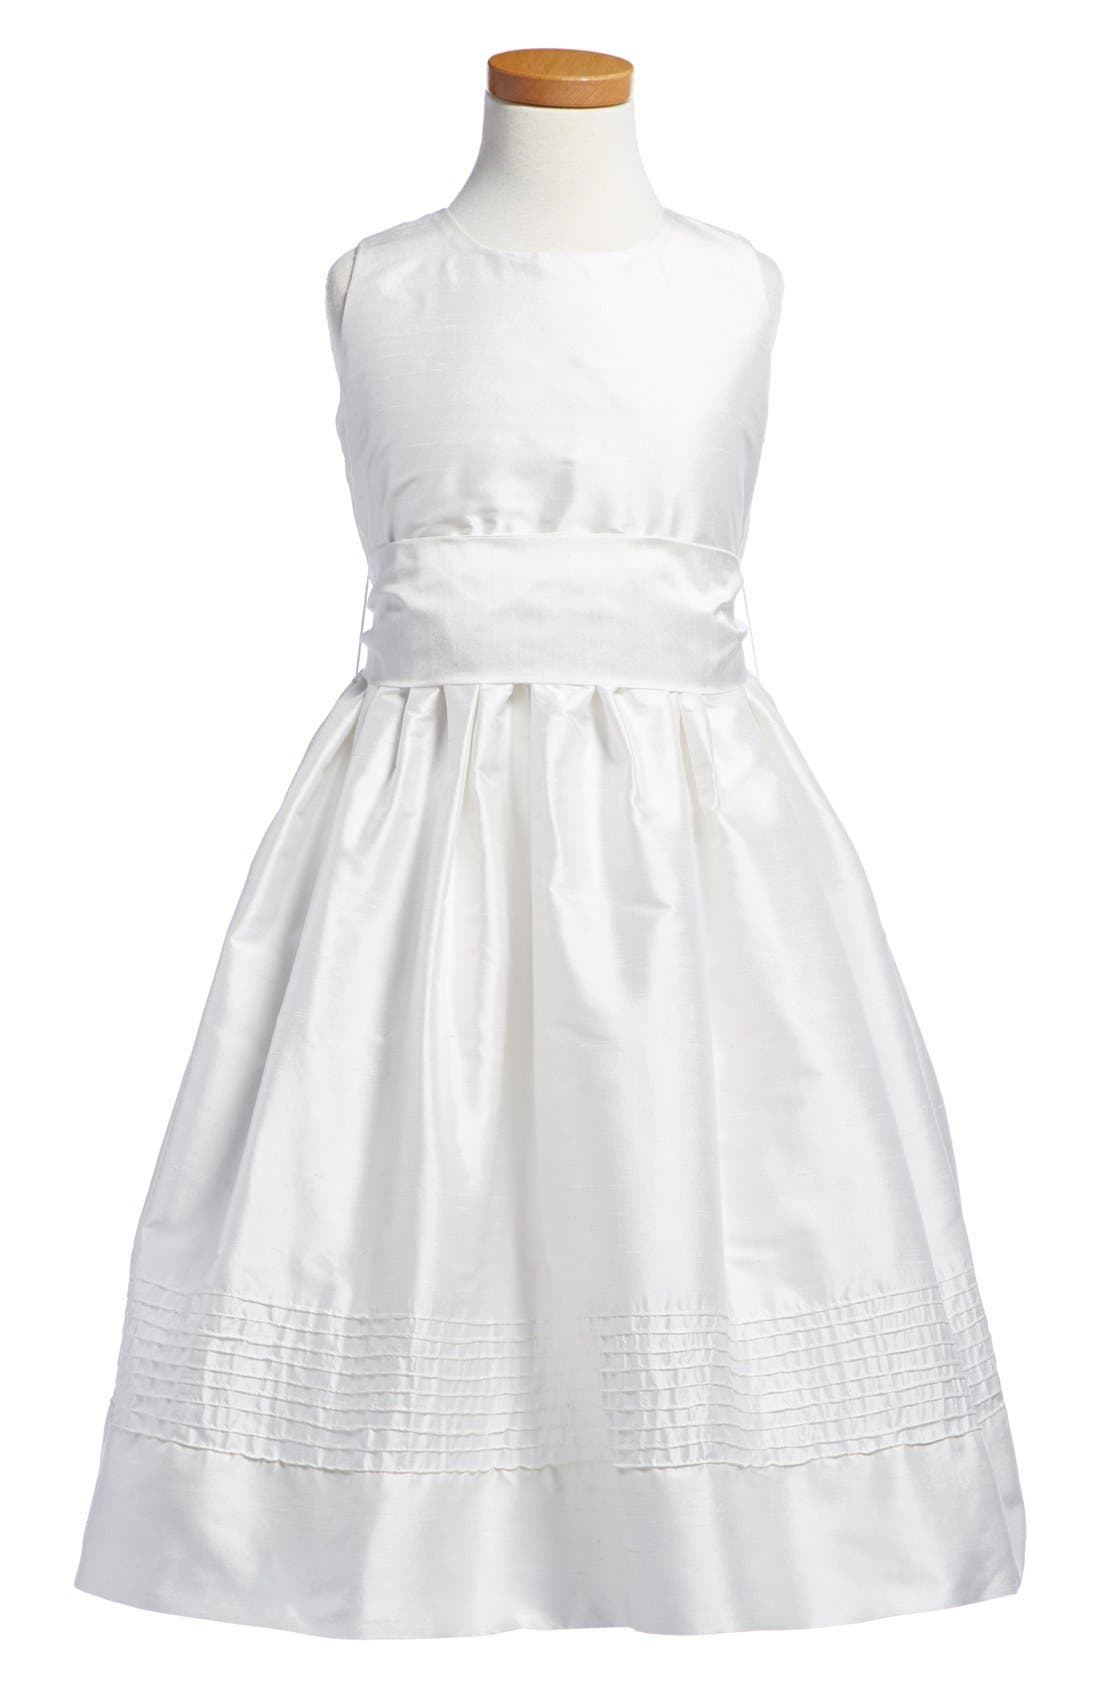 Isabel Garreton 'Timeless' Sleeveless Dress (Little Girls & Big Girls)